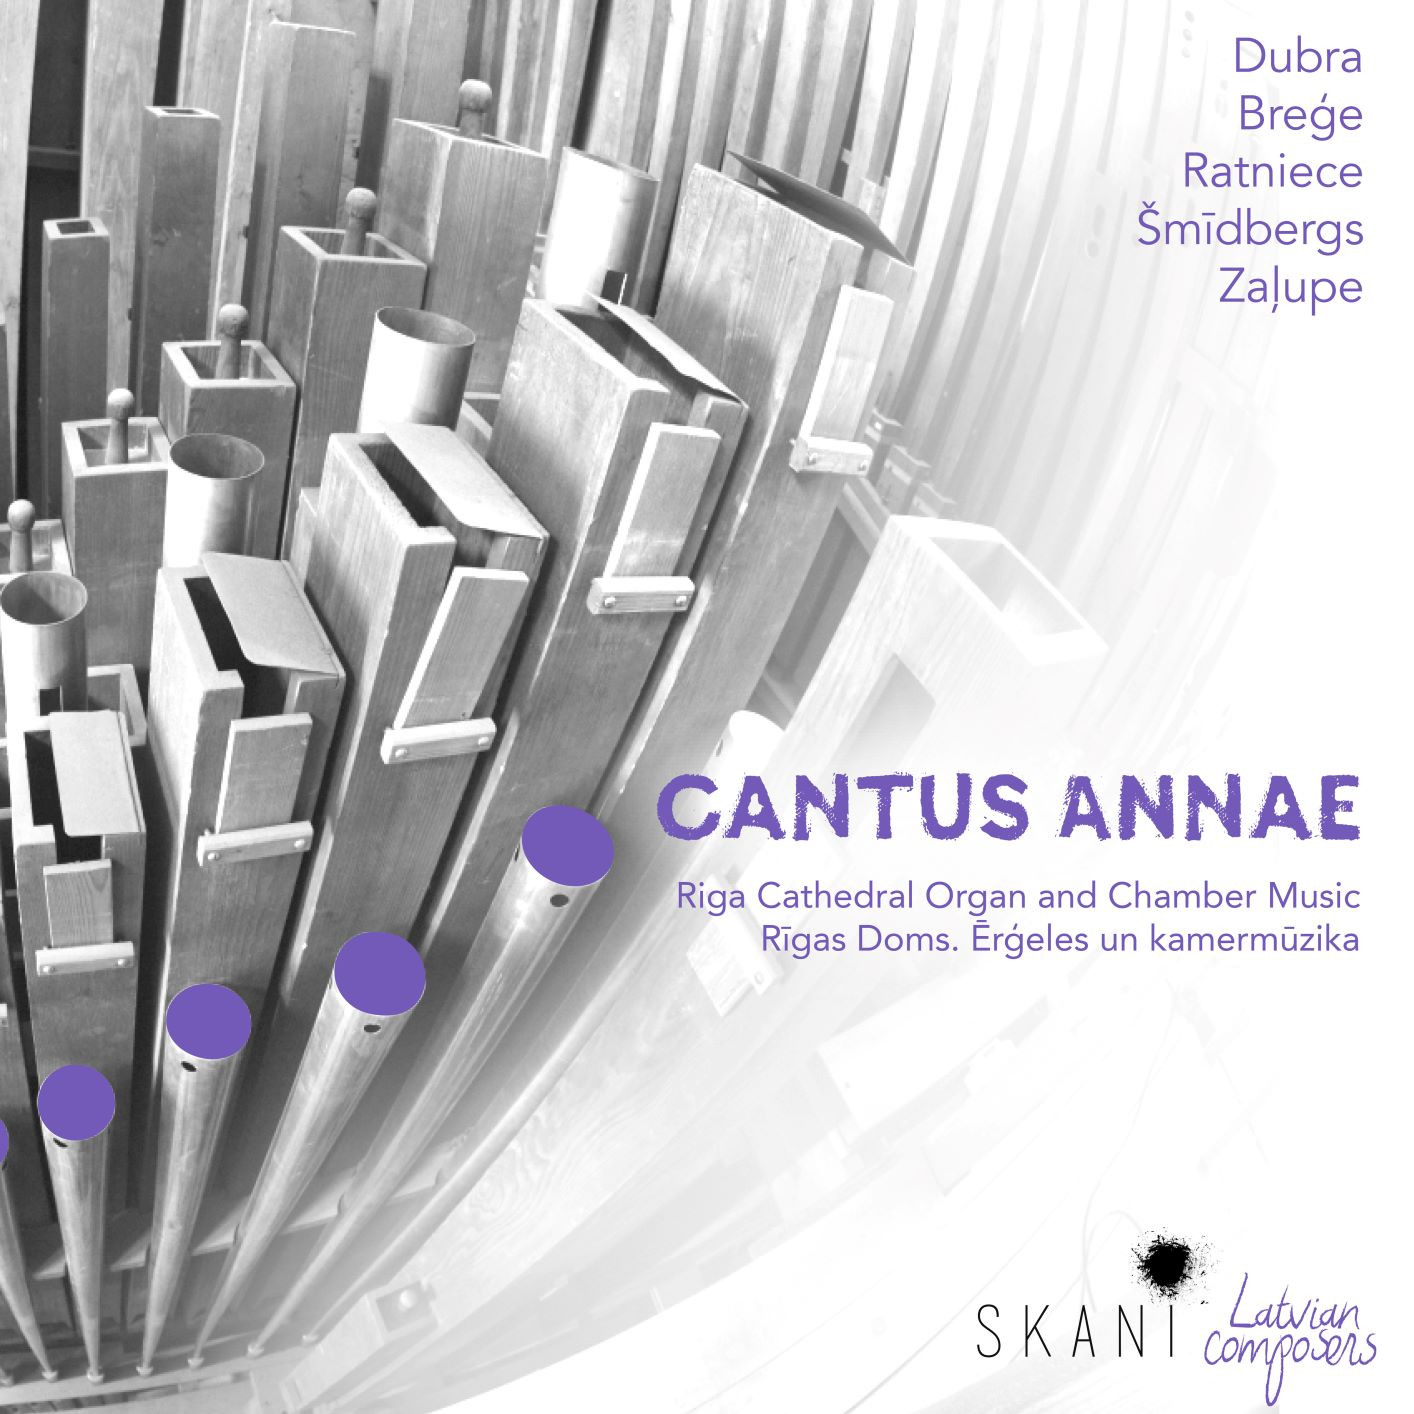 Cantus Annae. Riga Cathedral Organ and Chamber Music